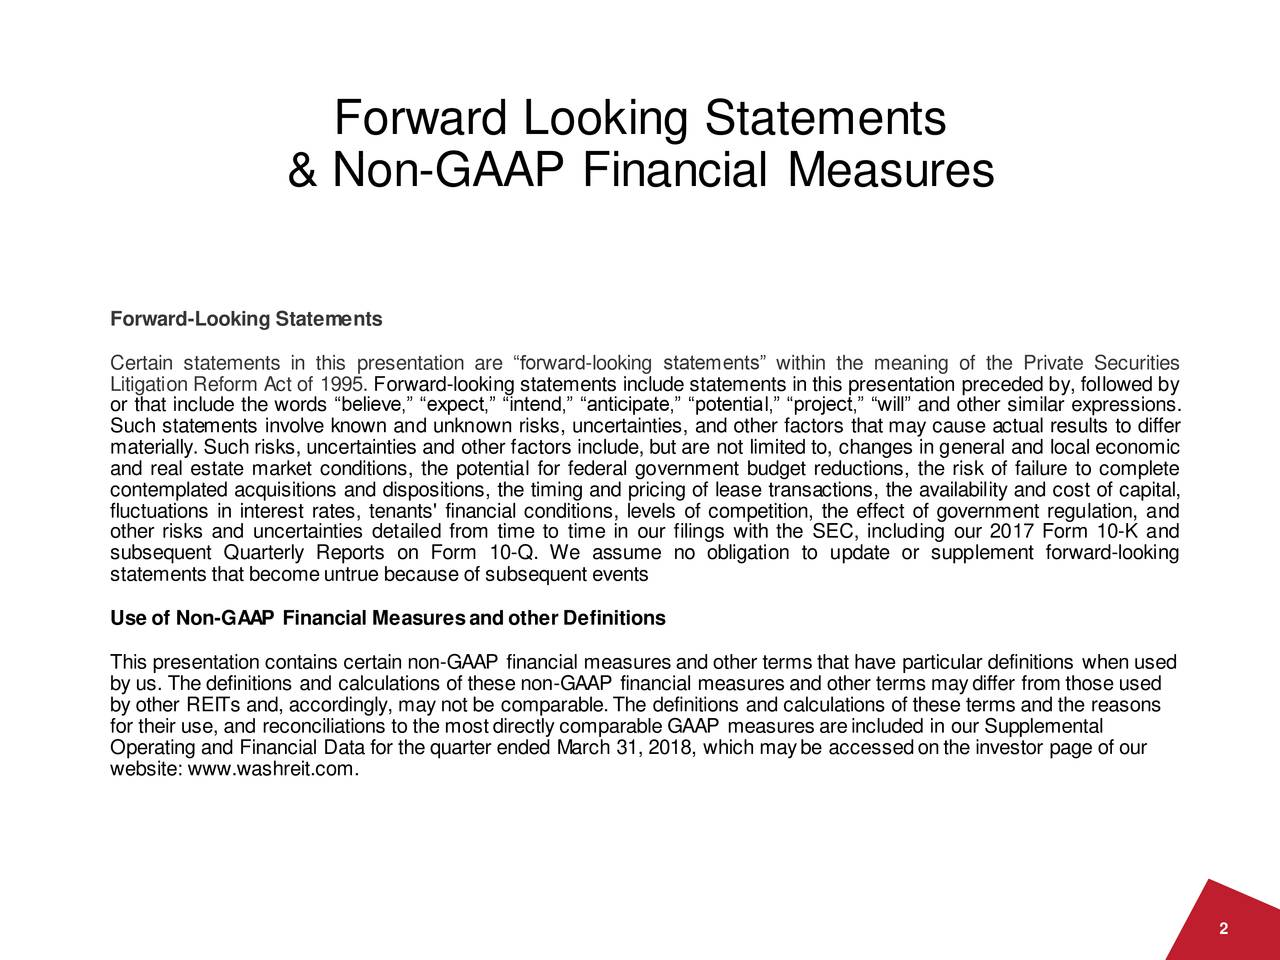 "& Non-GAAP Financial Measures Forward-Looking Statements Certain statements in this presentation are ""forward-looking statements"" within the meaning of the Private Securities or that include the words ""believe,"" ""expect,"" ""intend,"" ""anticipate,"" ""potential,"" ""project,"" ""will"" and other similar expressions. Such statements involve known and unknown risks, uncertainties, and other factors that may cause actual results to differ materially. Such risks, uncertainties and other factors include, but are not limited to, changes in general and local economic and real estate market conditions, the potential for federal government budget reductions, the risk of failure to complete contemplated acquisitions and dispositions, the timing and pricing of lease transactions, the availability and cost of capital, fluctuations in interest rates, tenants' financial conditions, levels of competition, the effect of government regulation, and other risks and uncertainties detailed from time to time in our filings with the SEC, including our 2017 Form 10-K and subsequent Quarterly Reports on Form 10-Q. We assume no obligation to update or supplement forward-looking statements that becomeuntrue because of subsequent events Use of Non-GAAP Financial Measuresandother Definitions This presentation contains certain non-GAAP financial measures and other terms that have particular definitions when used by us. The definitions and calculations of these non-GAAP financial measures and other terms maydiffer from those used by other REITs and, accordingly, may not be comparable.The definitions and calculations of these terms and the reasons for their use, and reconciliations to the mostdirectly comparable GAAP measures areincluded in our Supplemental Operating and Financial Data for the quarter ended March 31, 2018, which maybe accessedonthe investor page of our website: www.washreit.com. 2"